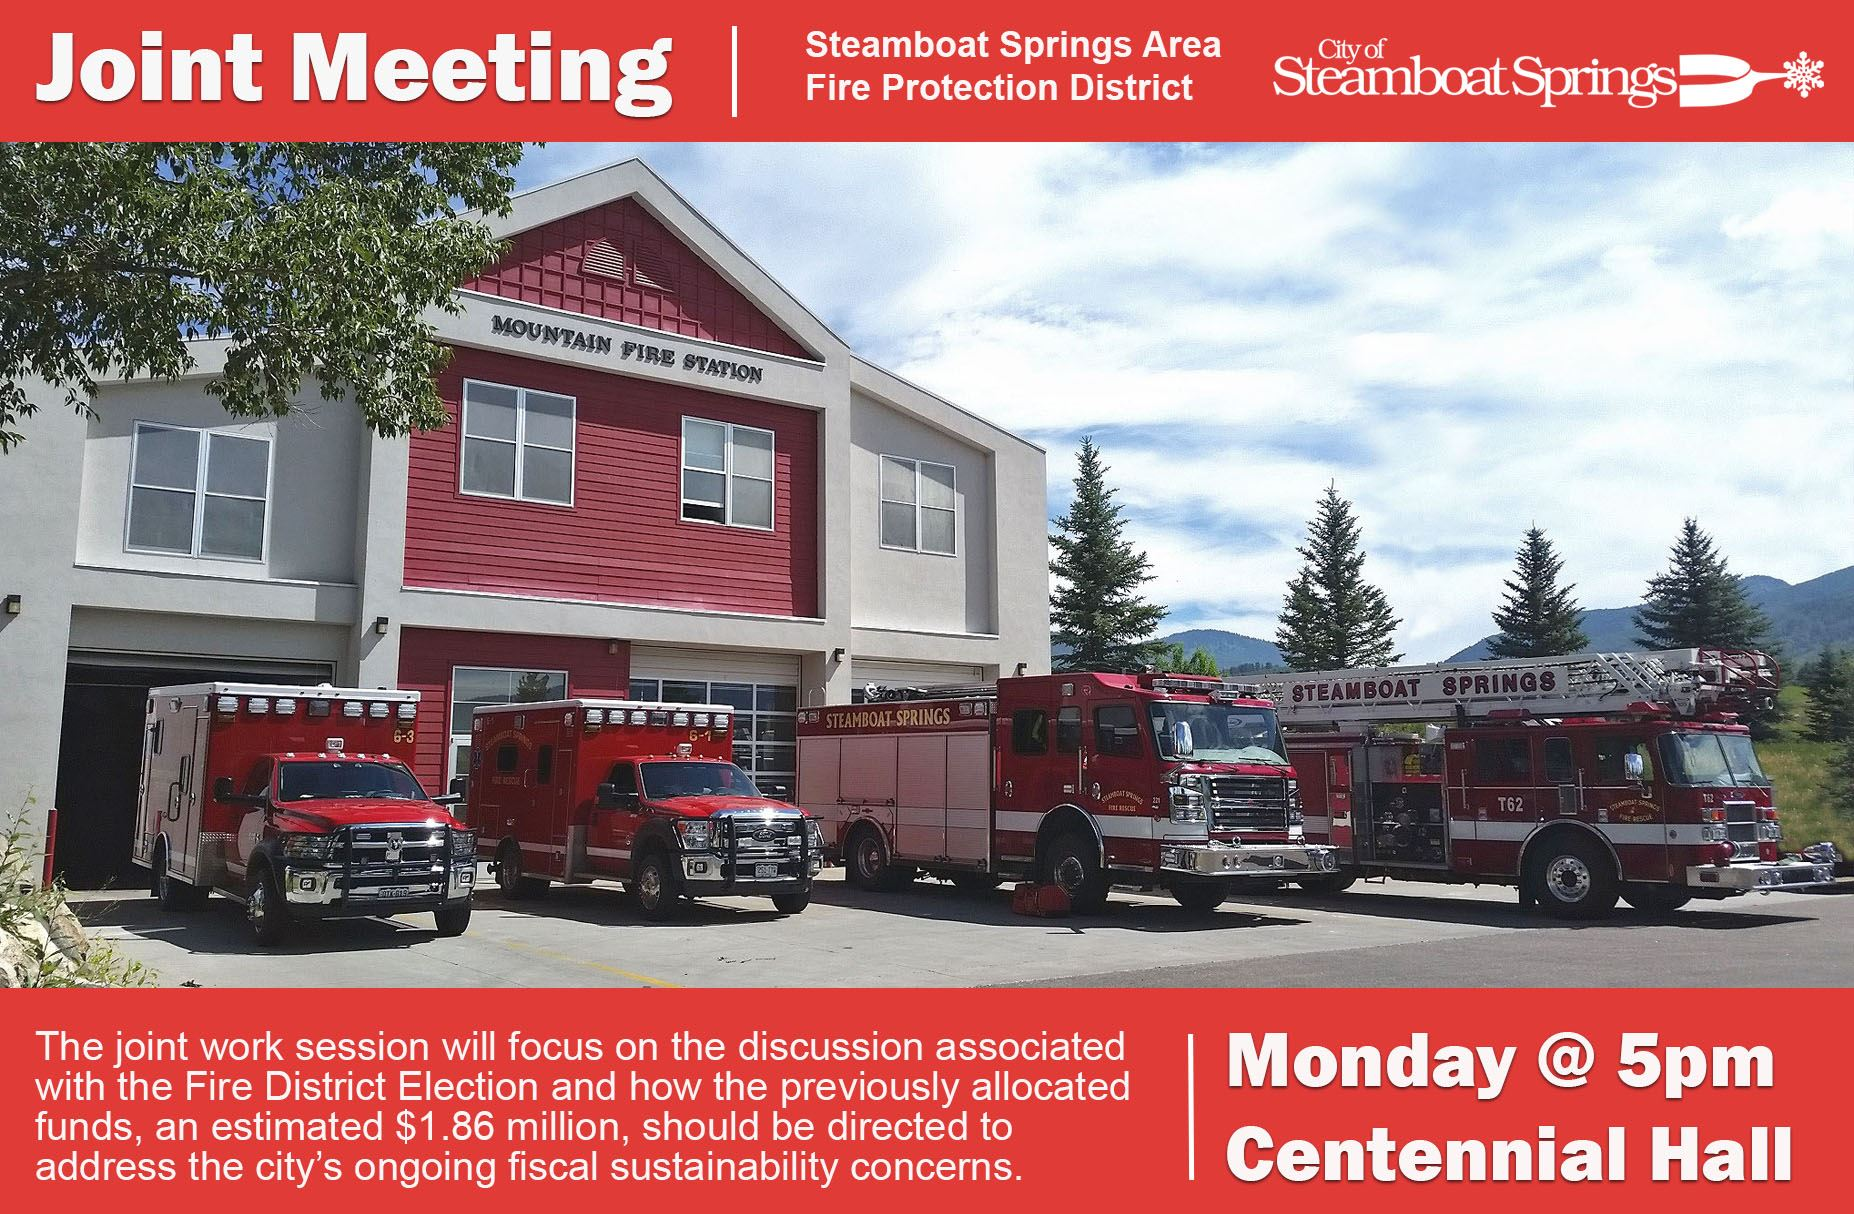 Joint Fire Meeting Opens in new window